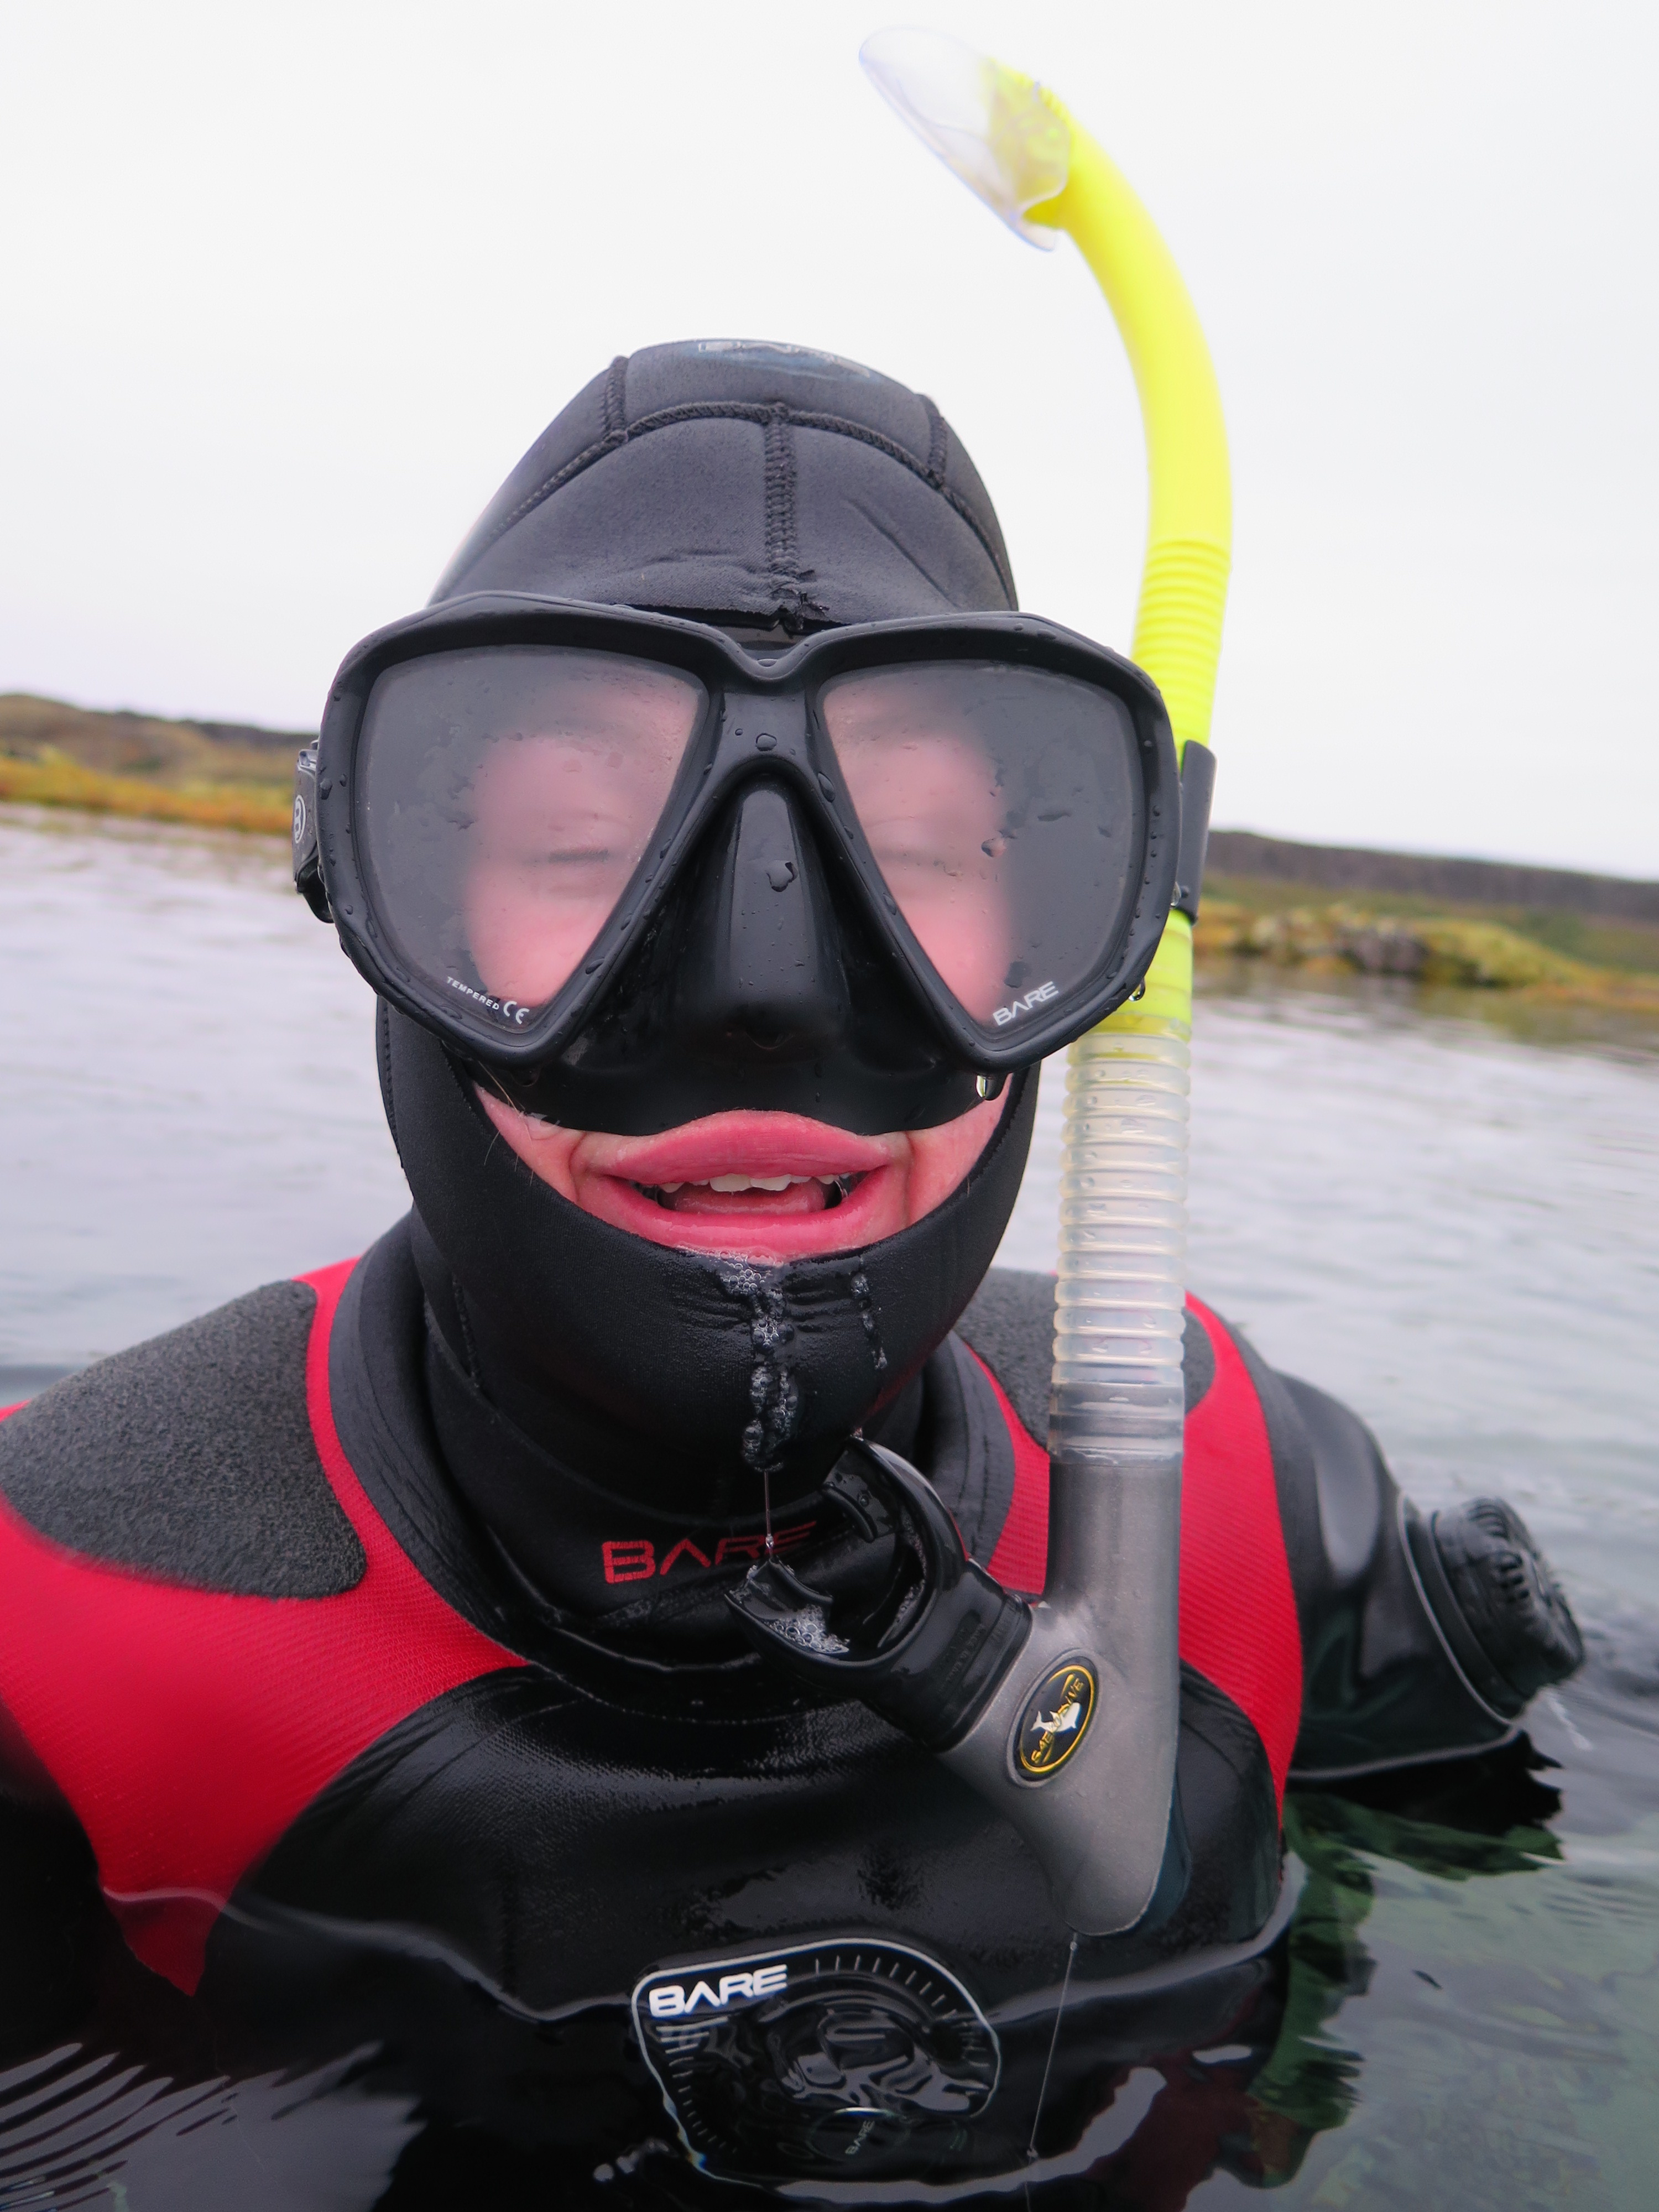 Phoe Travels to Iceland to Snorkel in a dry suit